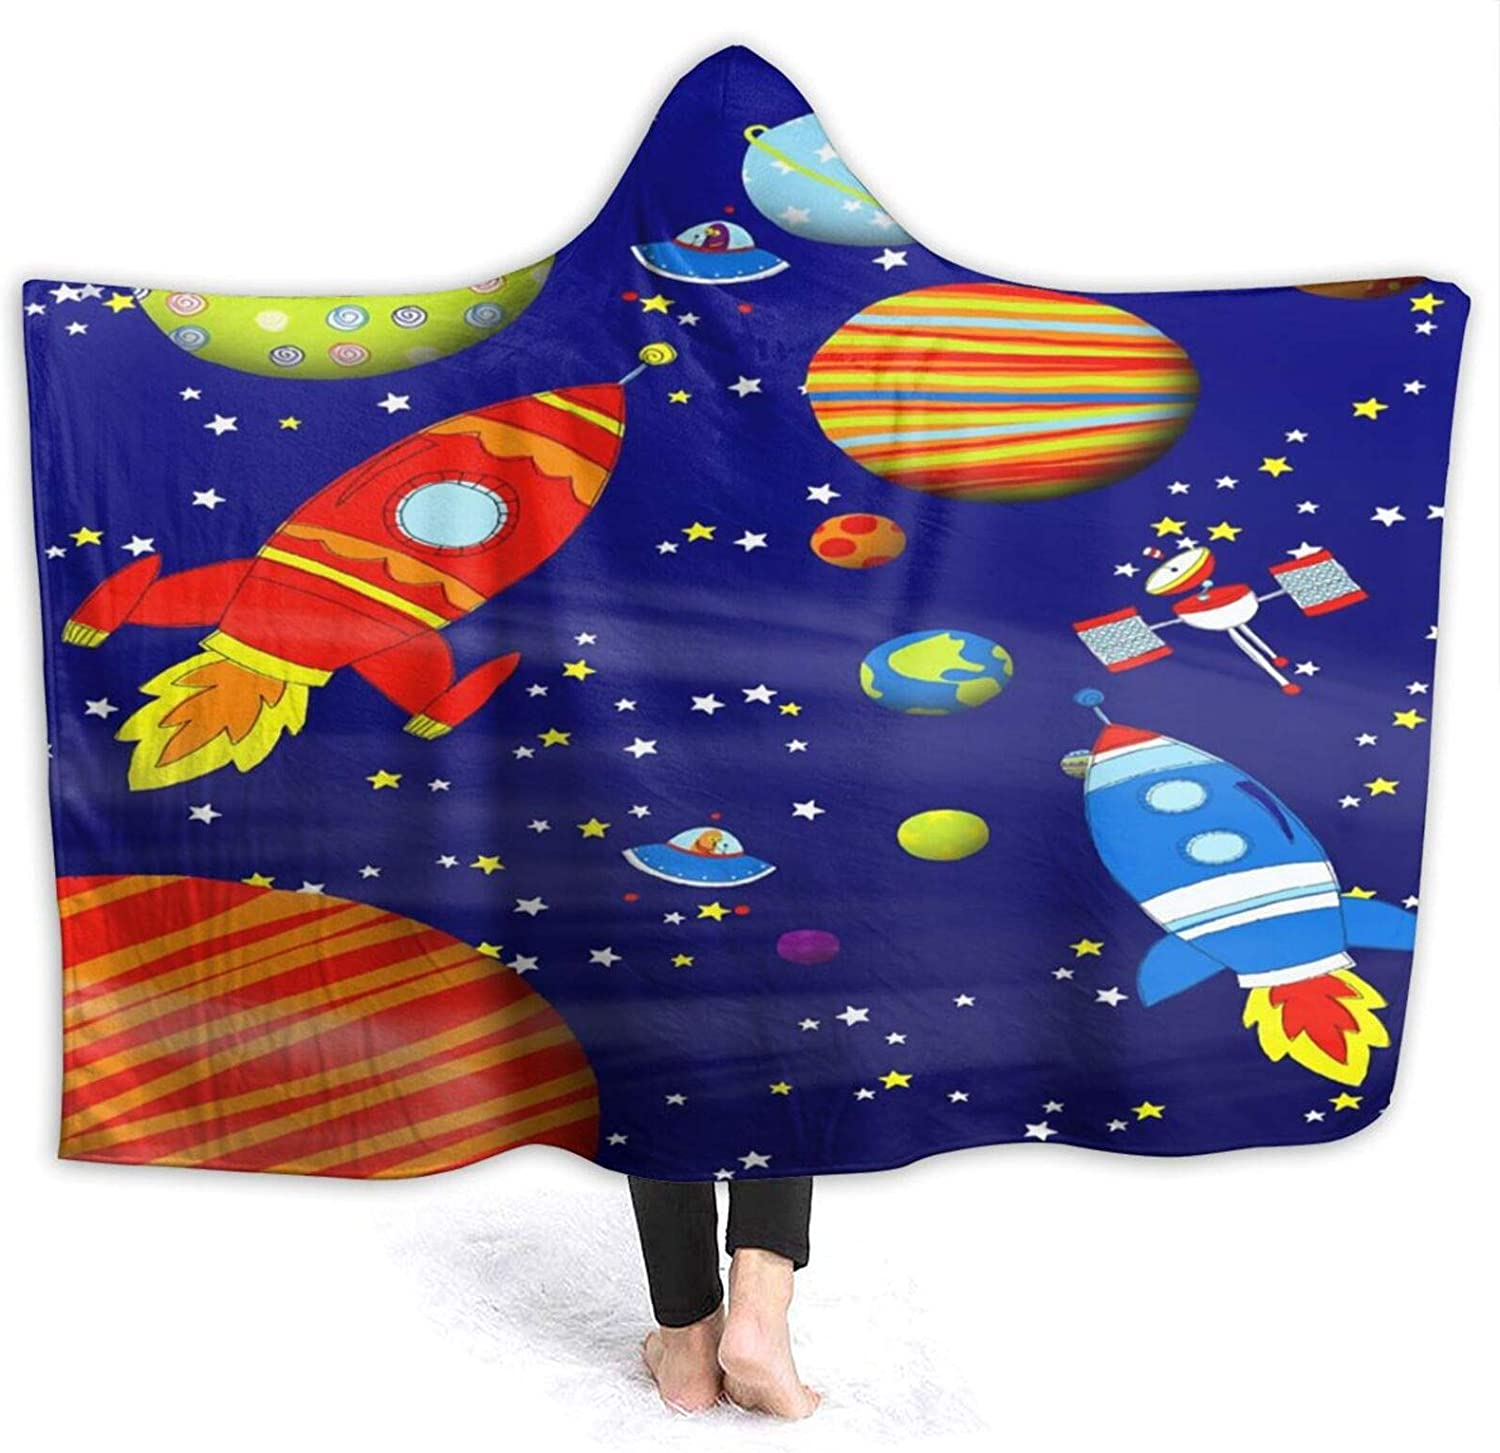 Colorful Space Astronaut Max 80% OFF Hood Blankets Anti-Pilling Fashion Wear Flannel